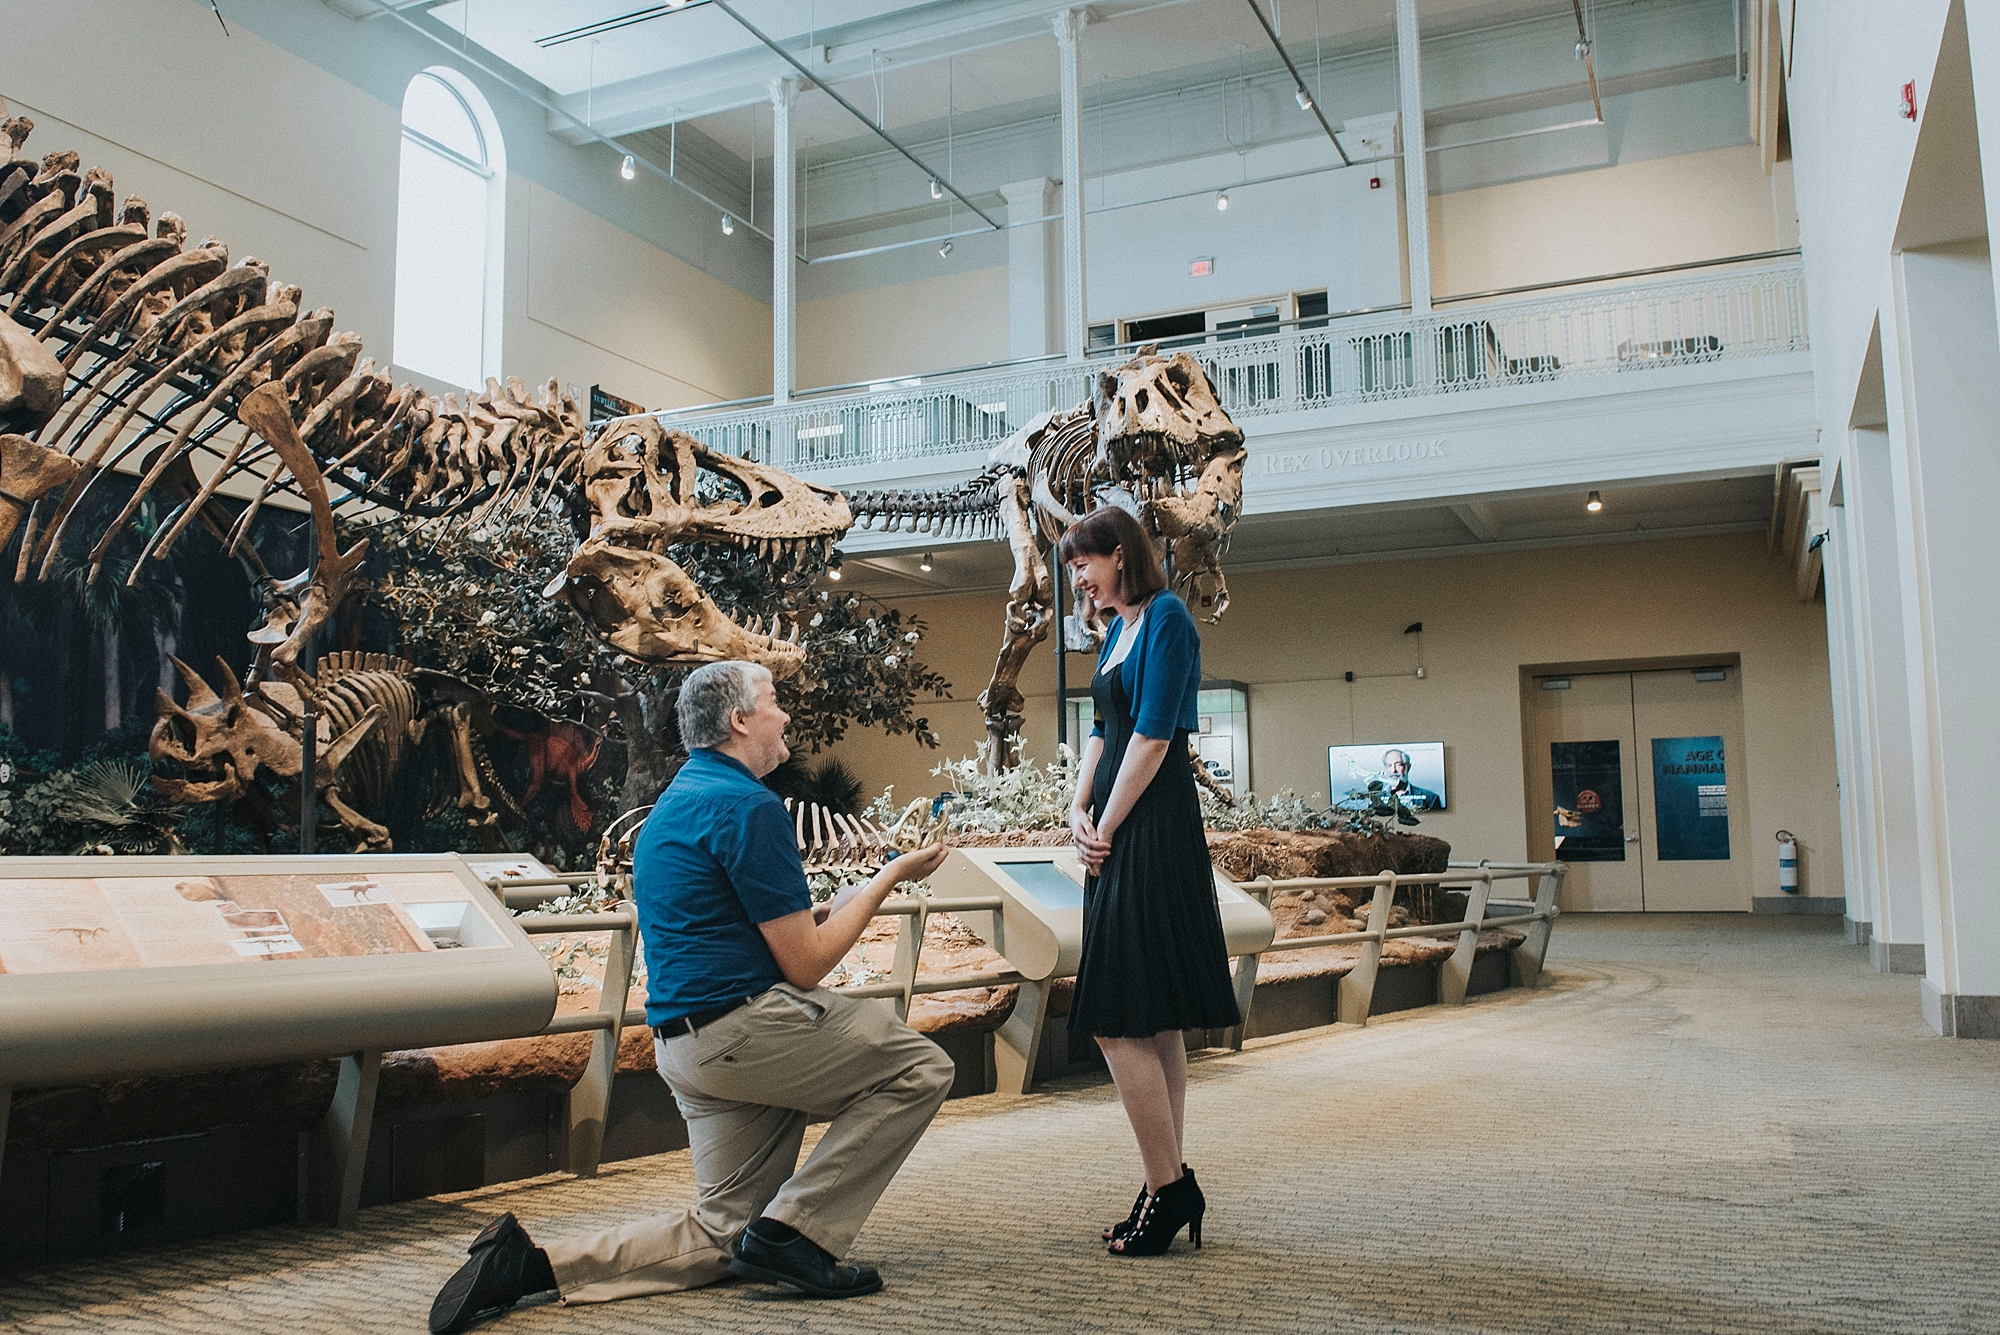 Proposal at Carnegie museum Pittsburgh